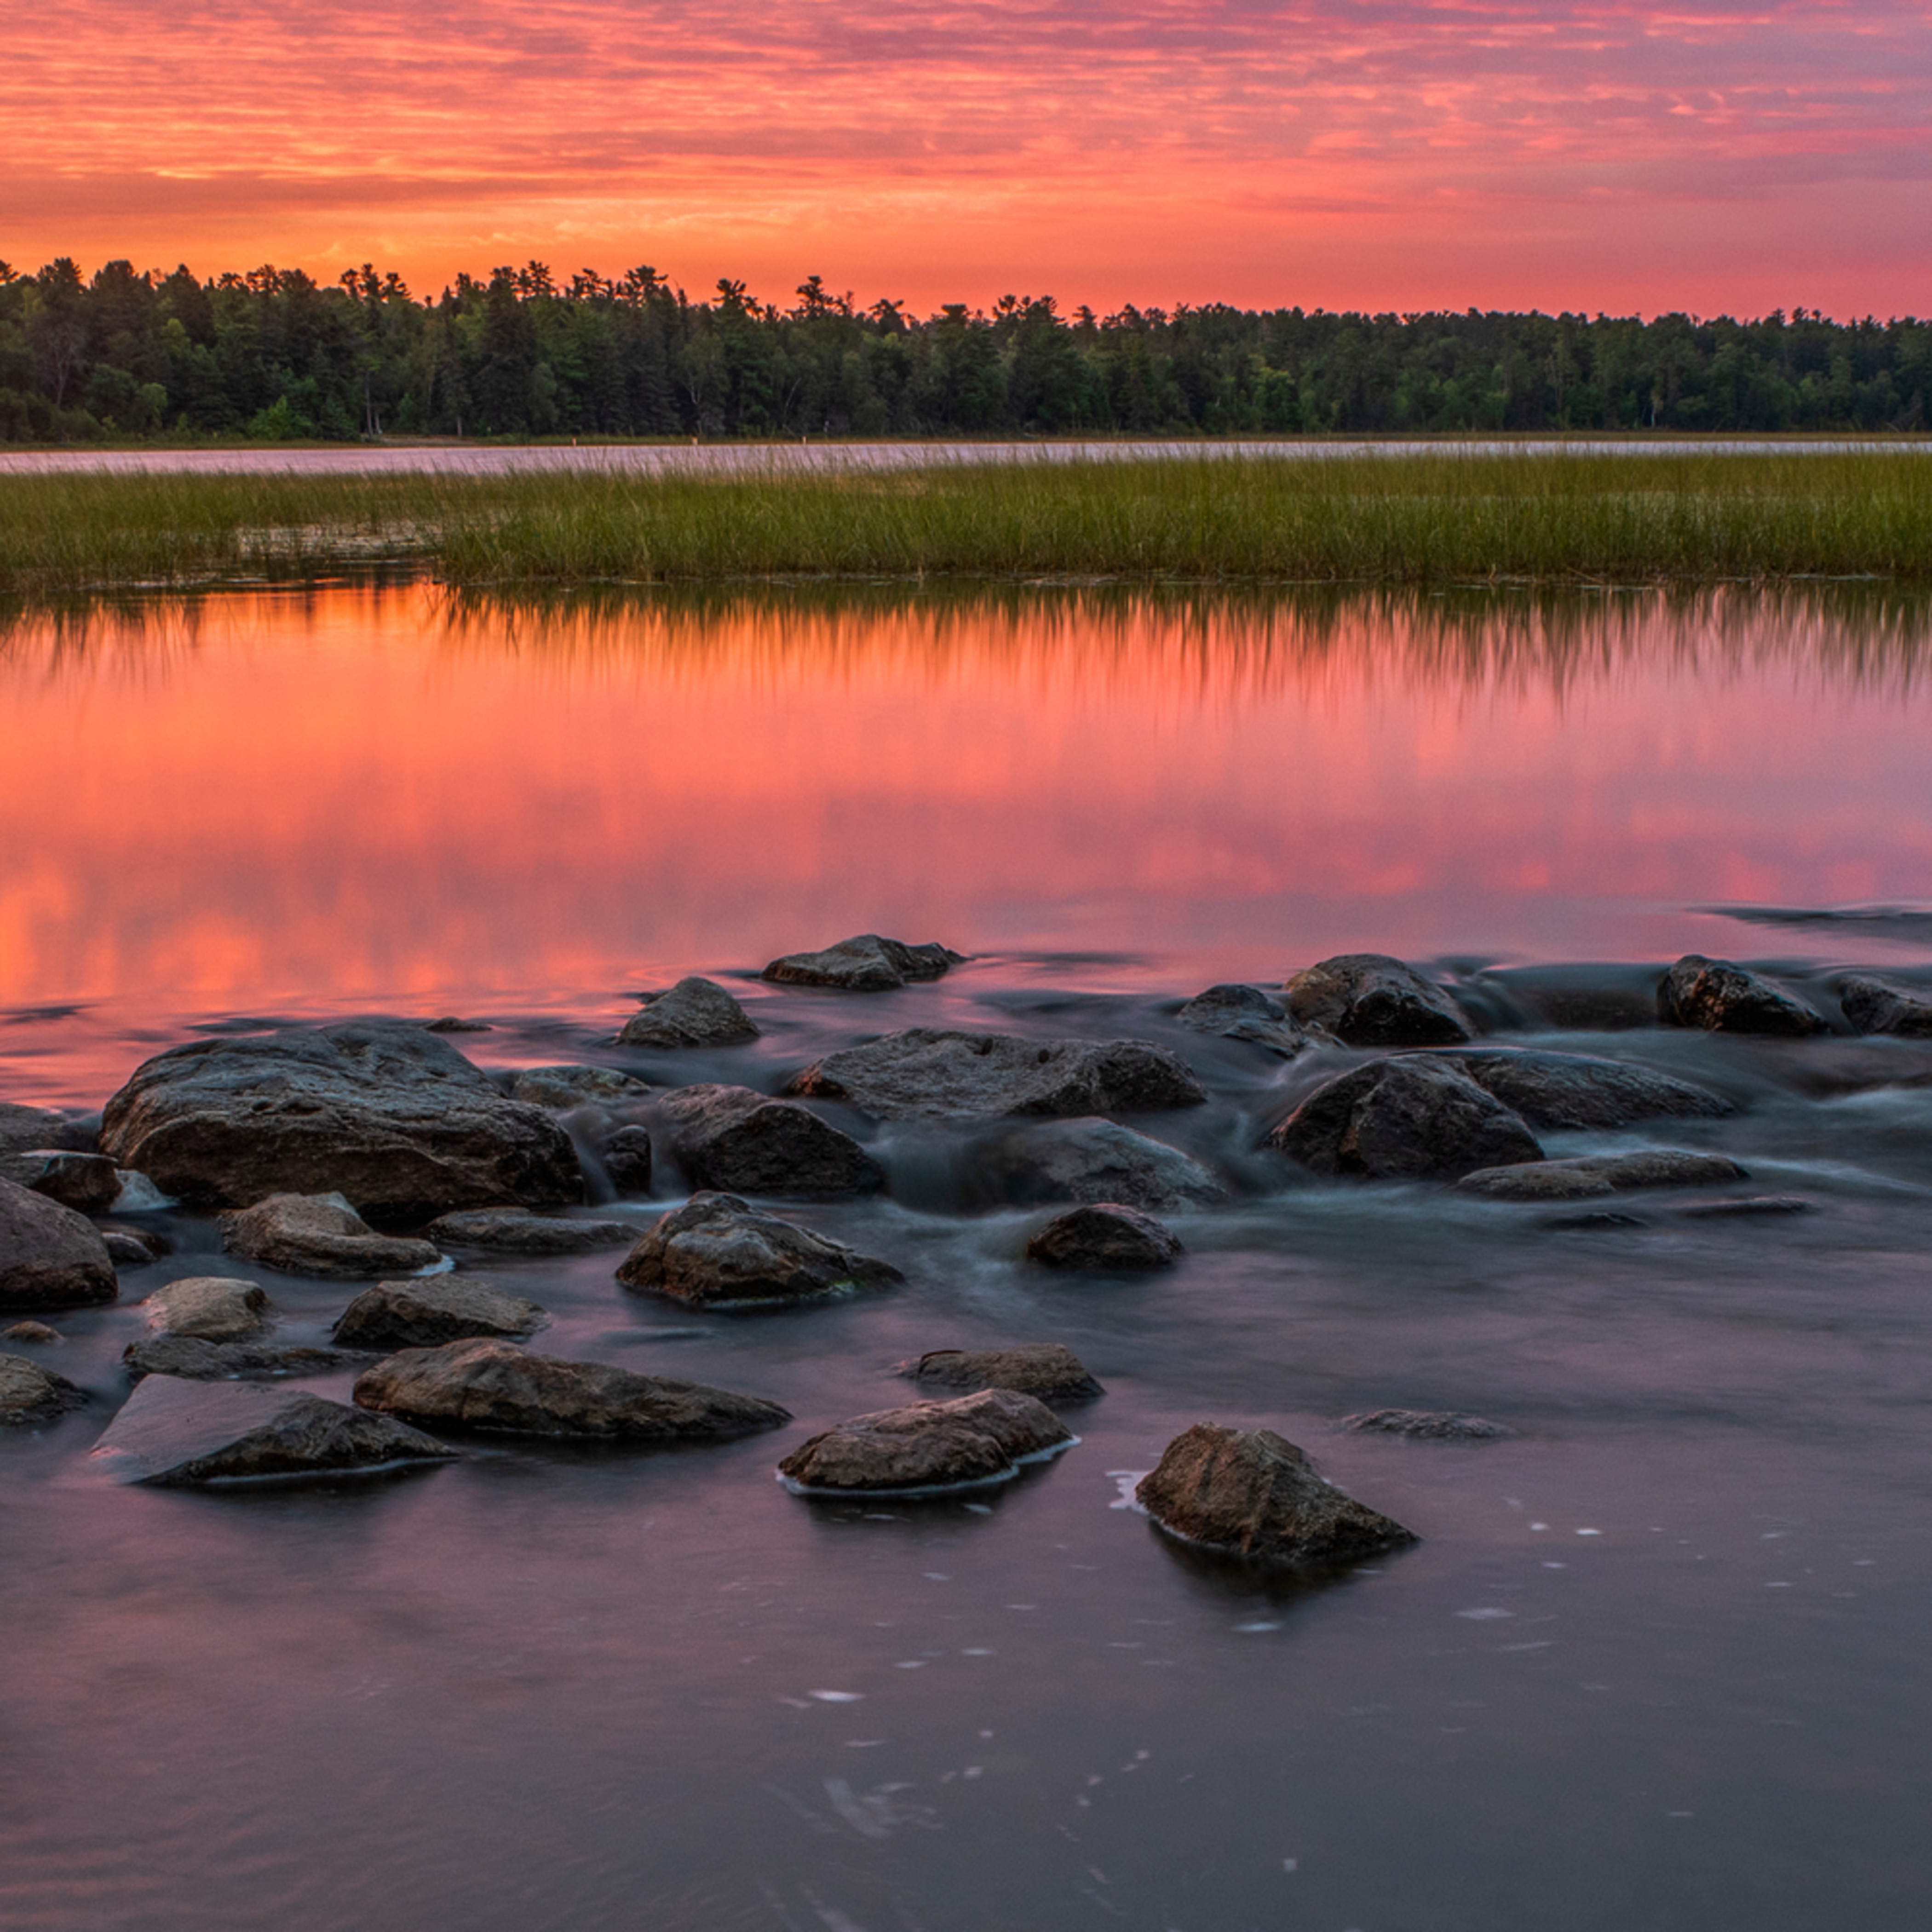 Dp660 sunrise mississippi river headwaters pano nidgtu